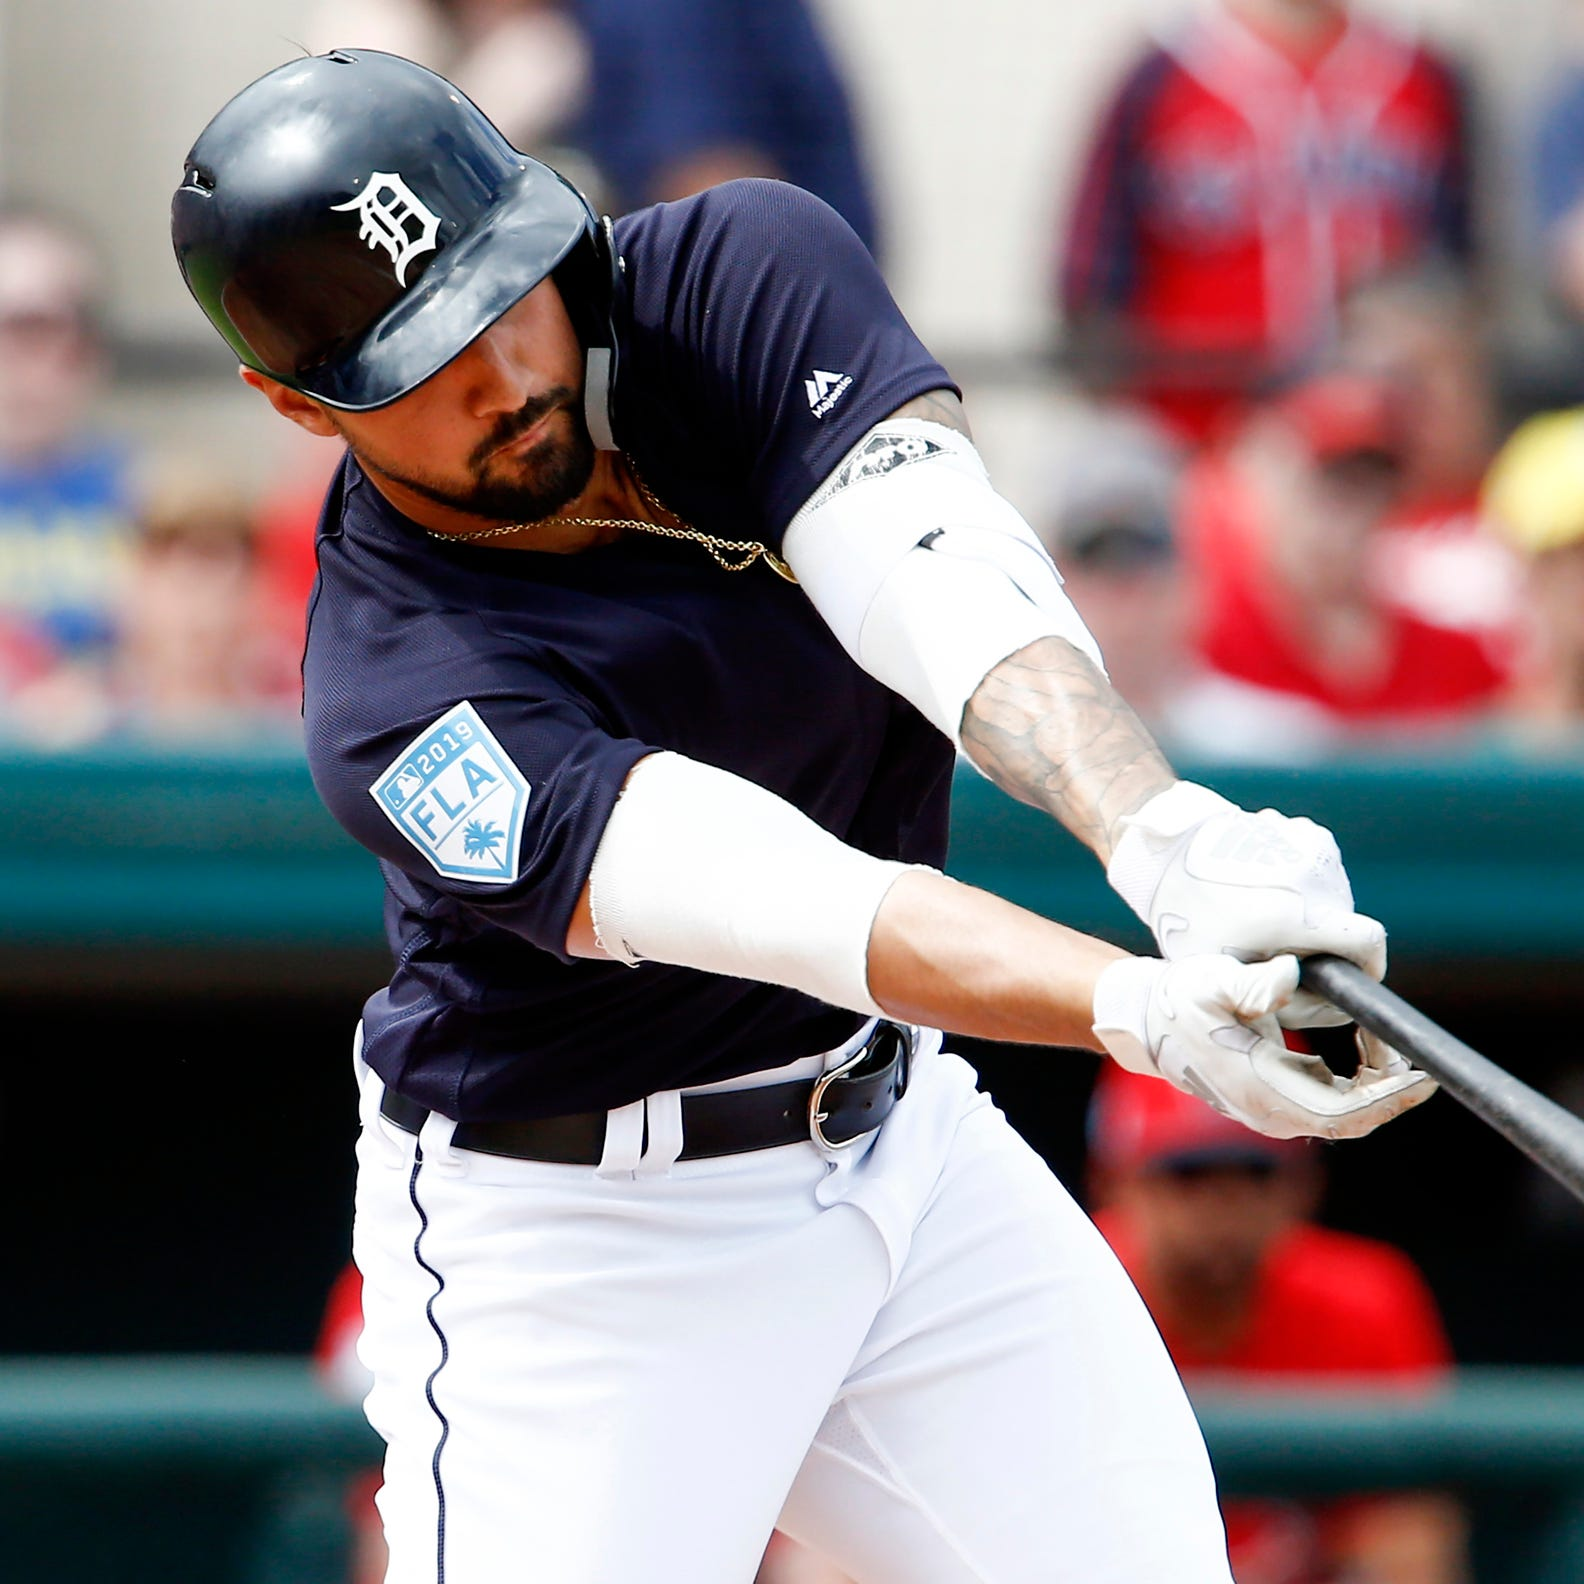 Detroit Tigers' Nicholas Castellanos is right: The MLB system is broken